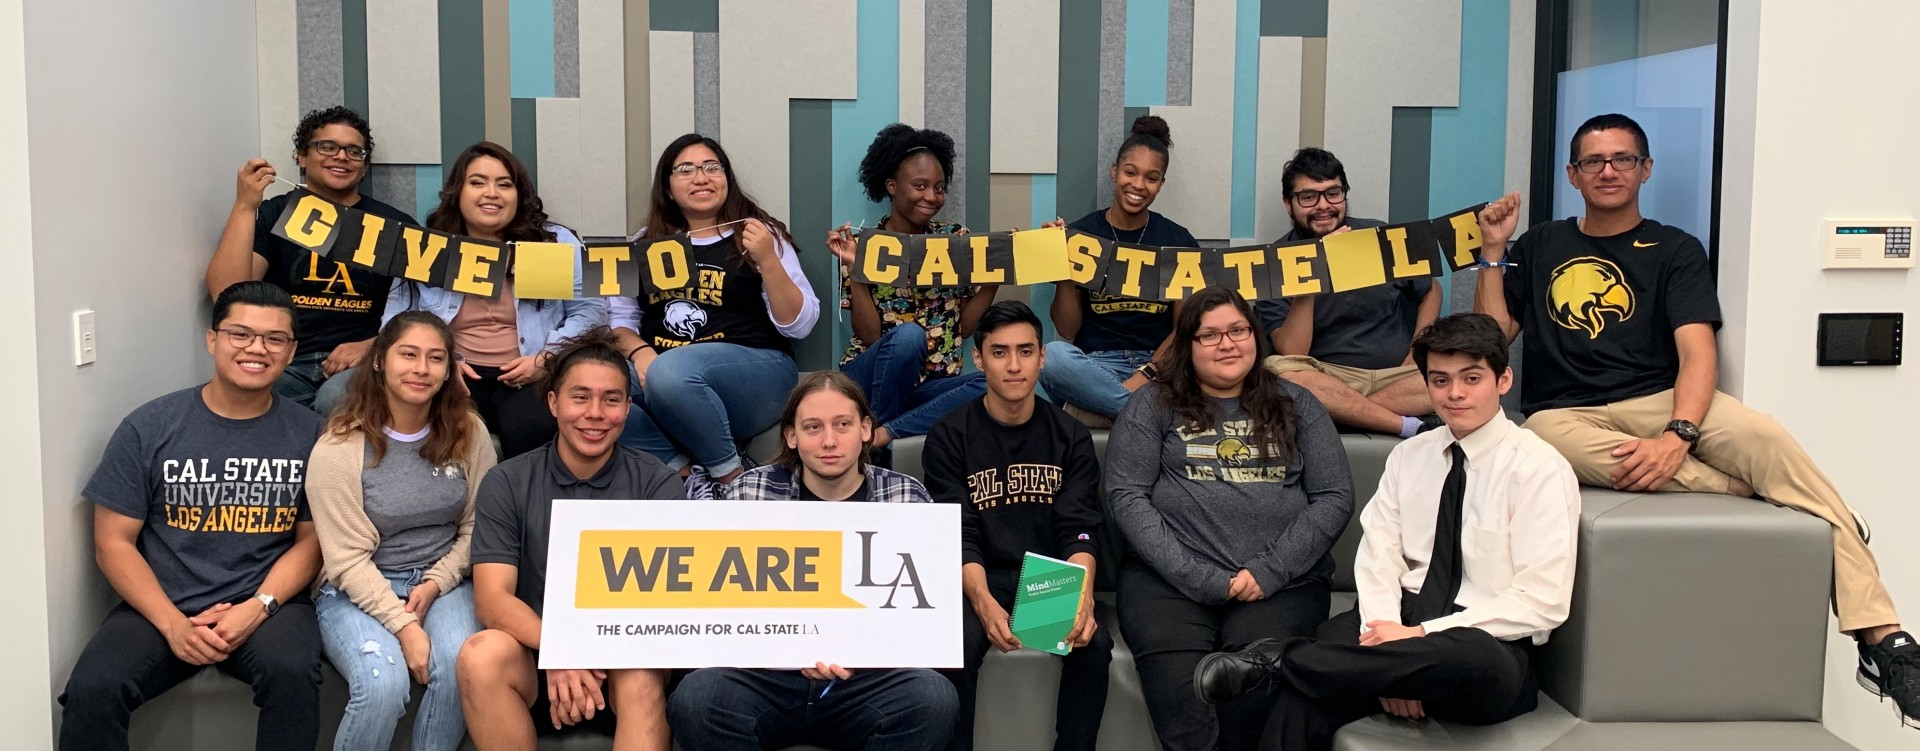 This is an image of Cal State LA's student fundraising team, holding a banner that reads Give to Cal State LA.